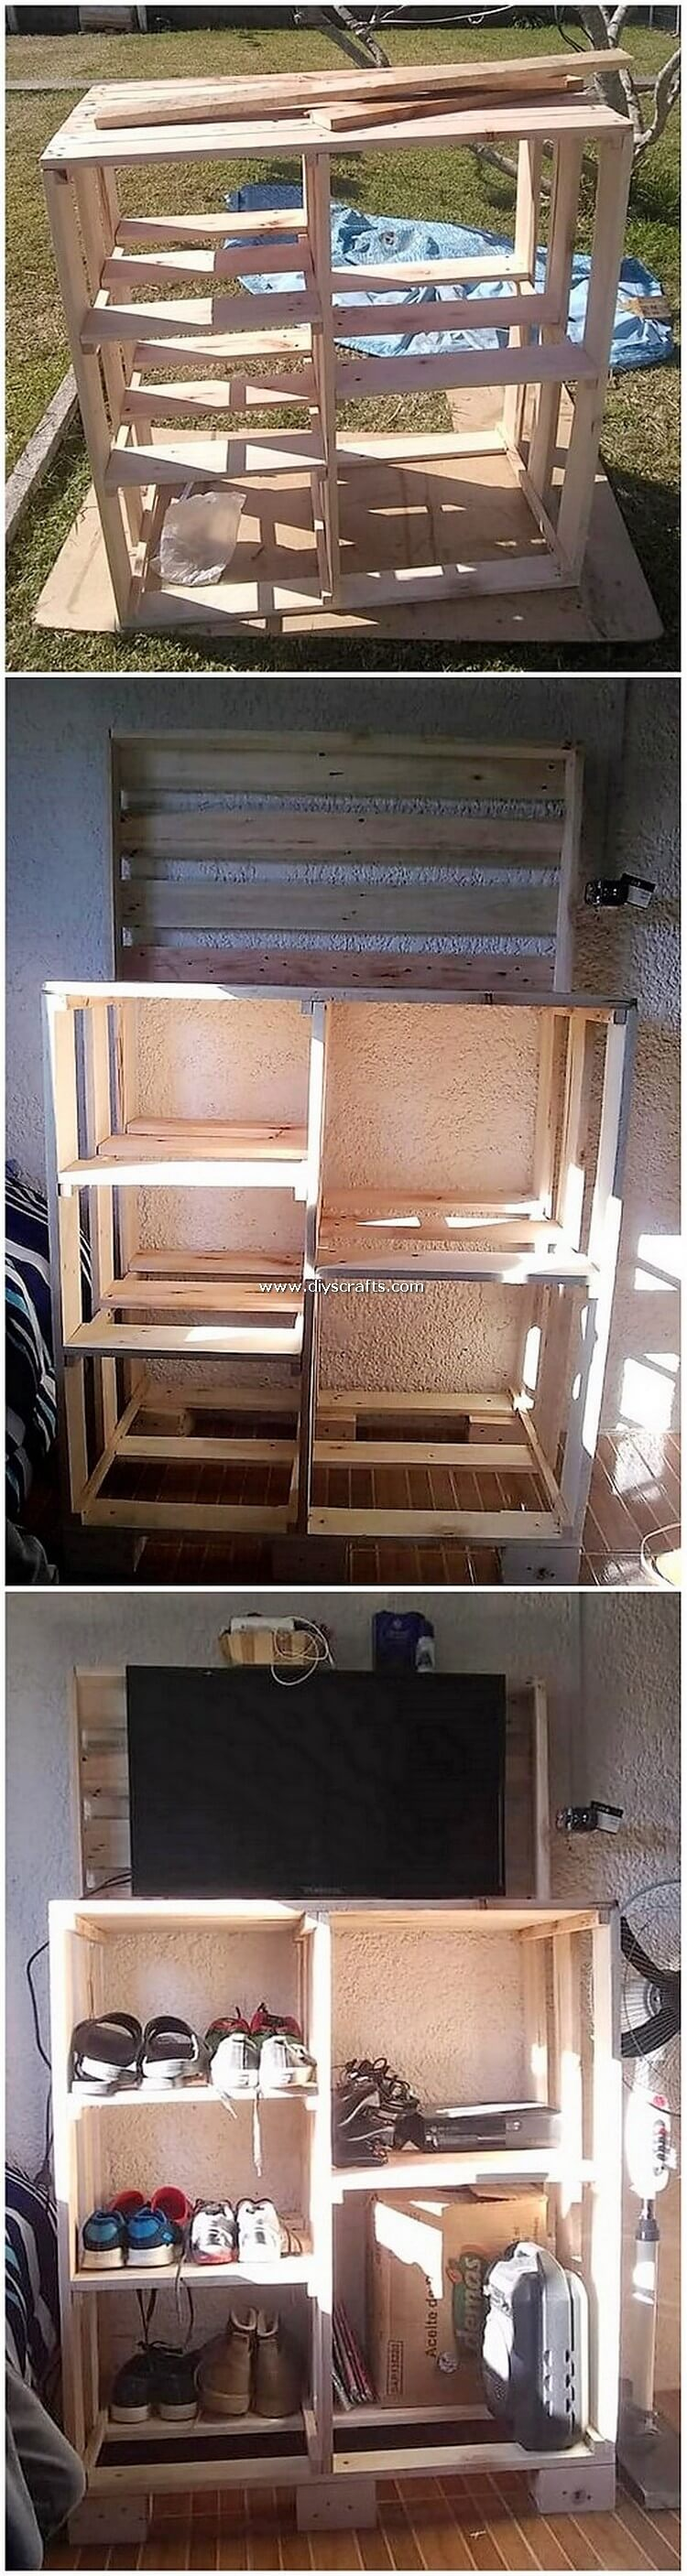 Pallet-TV-Stand-with-Shelving-Unit